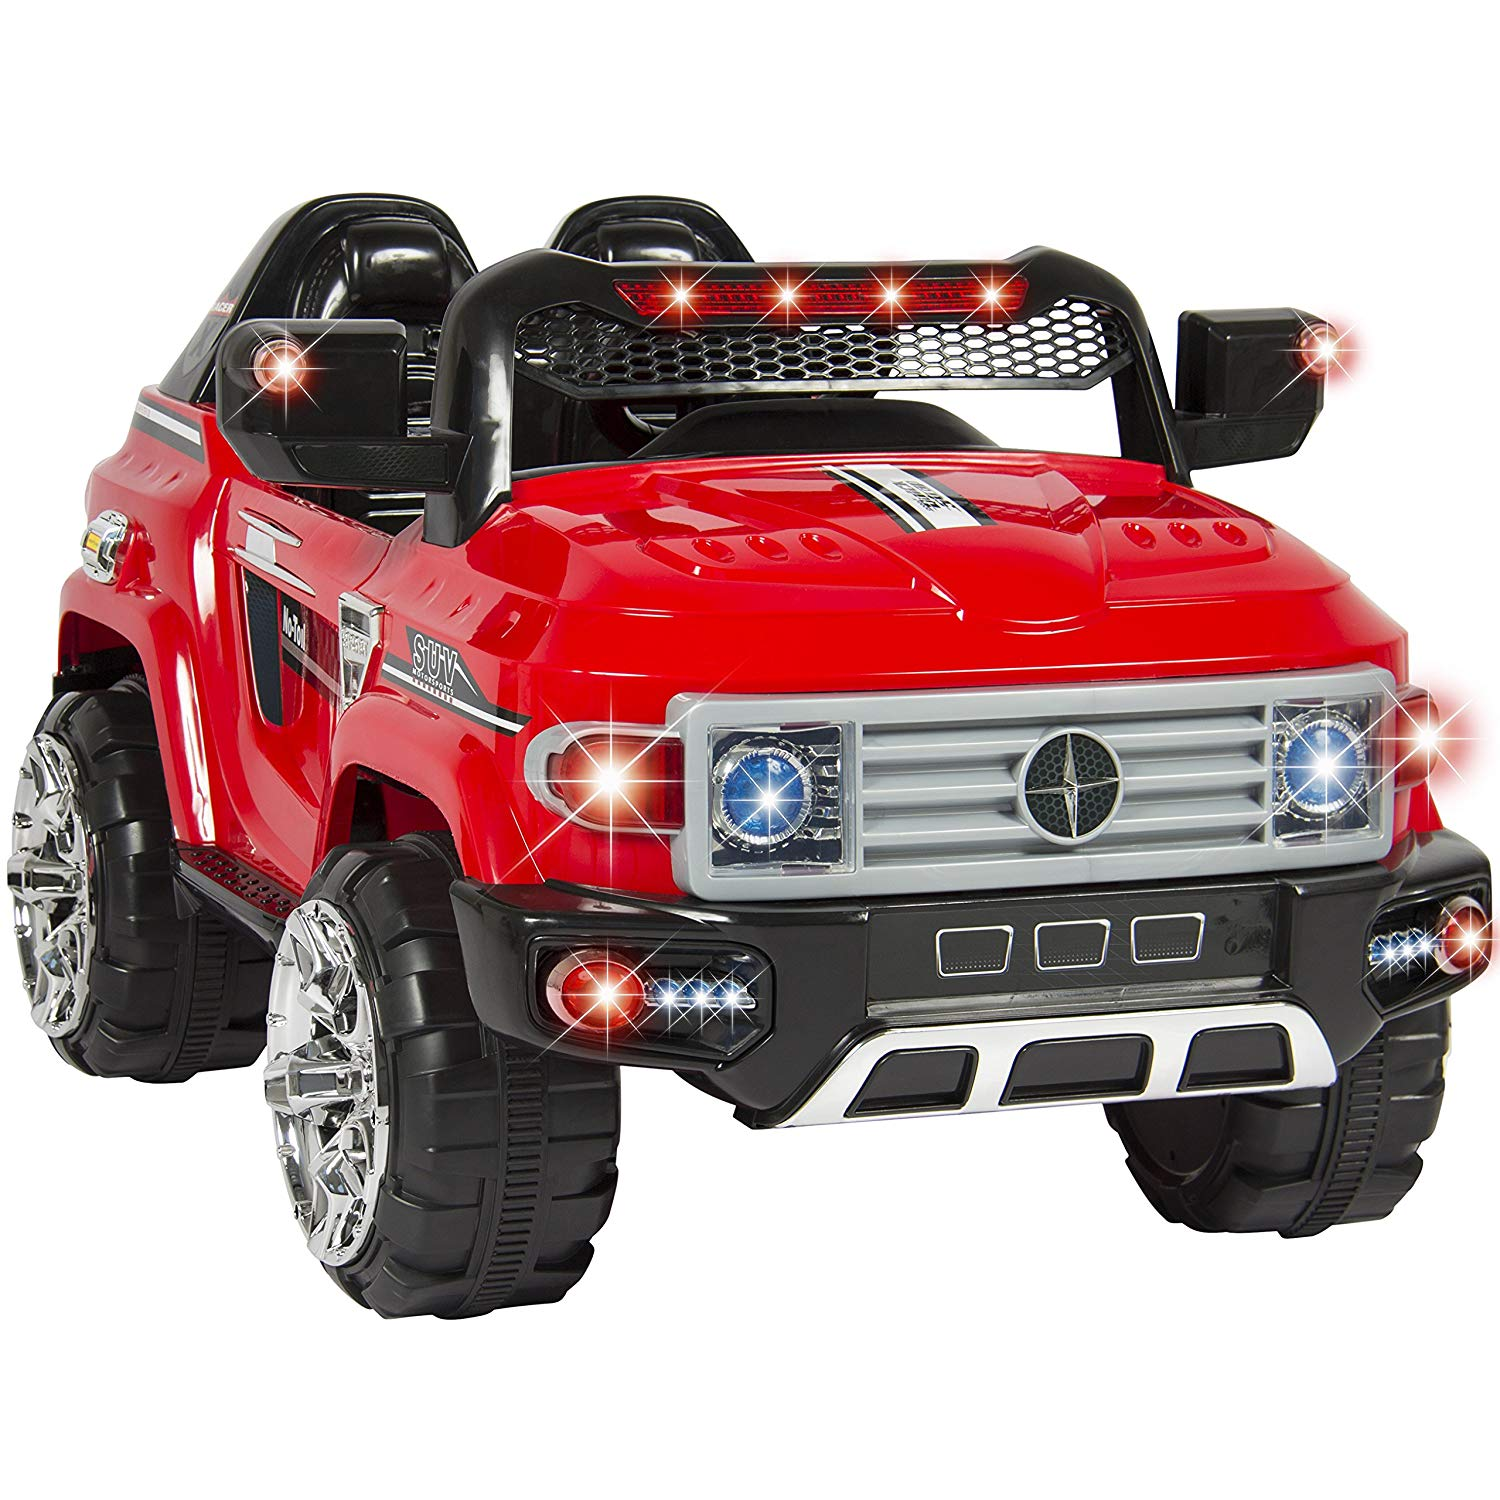 best choice products 12v kids rc remote control truck suv ride on car w 2 speeds led lights mp3 aux cord red toys games